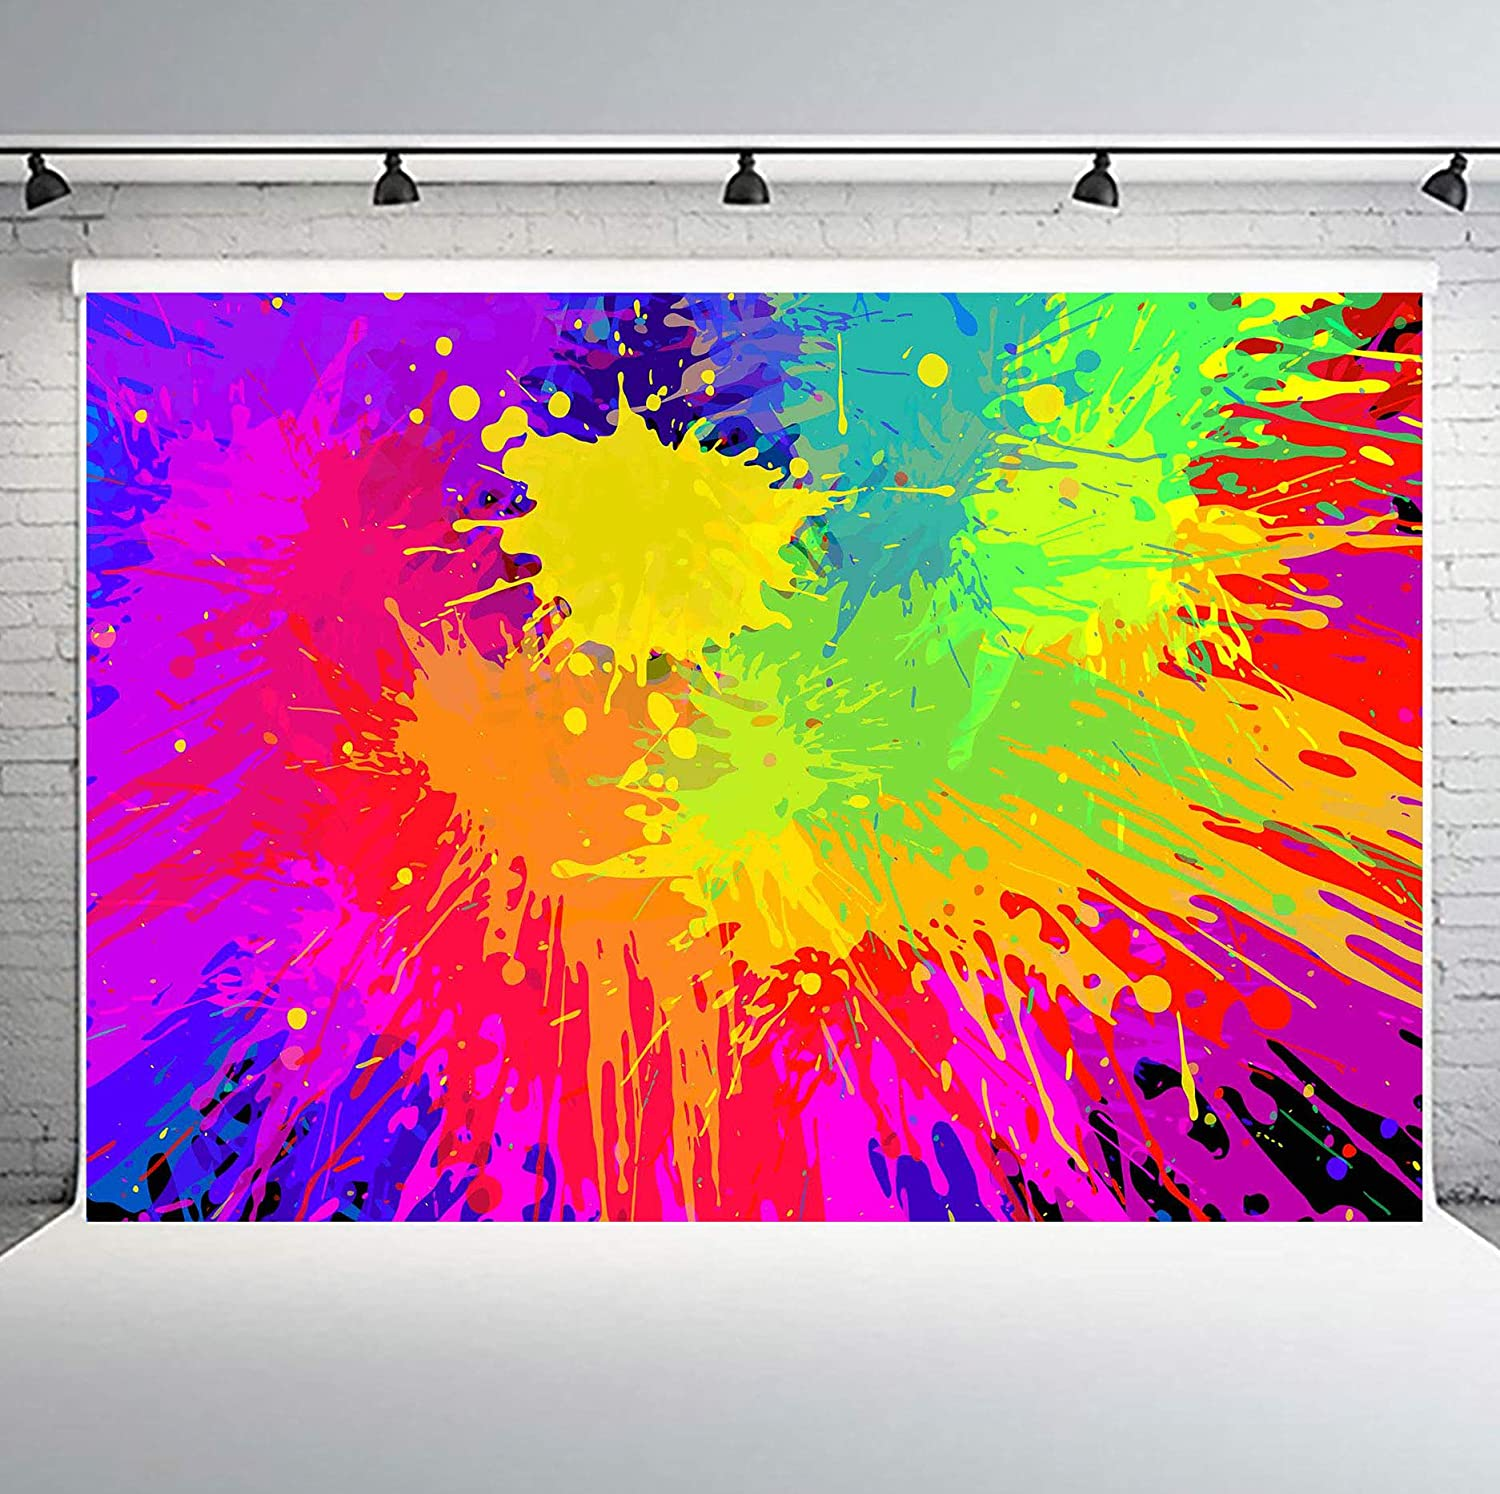 Phmojen Colorful Graffiti Backdrop Abstract Paint Splash Background For Photography Hip Hop Theme Birthday Party Decoration Art Studio Props 10x7ft